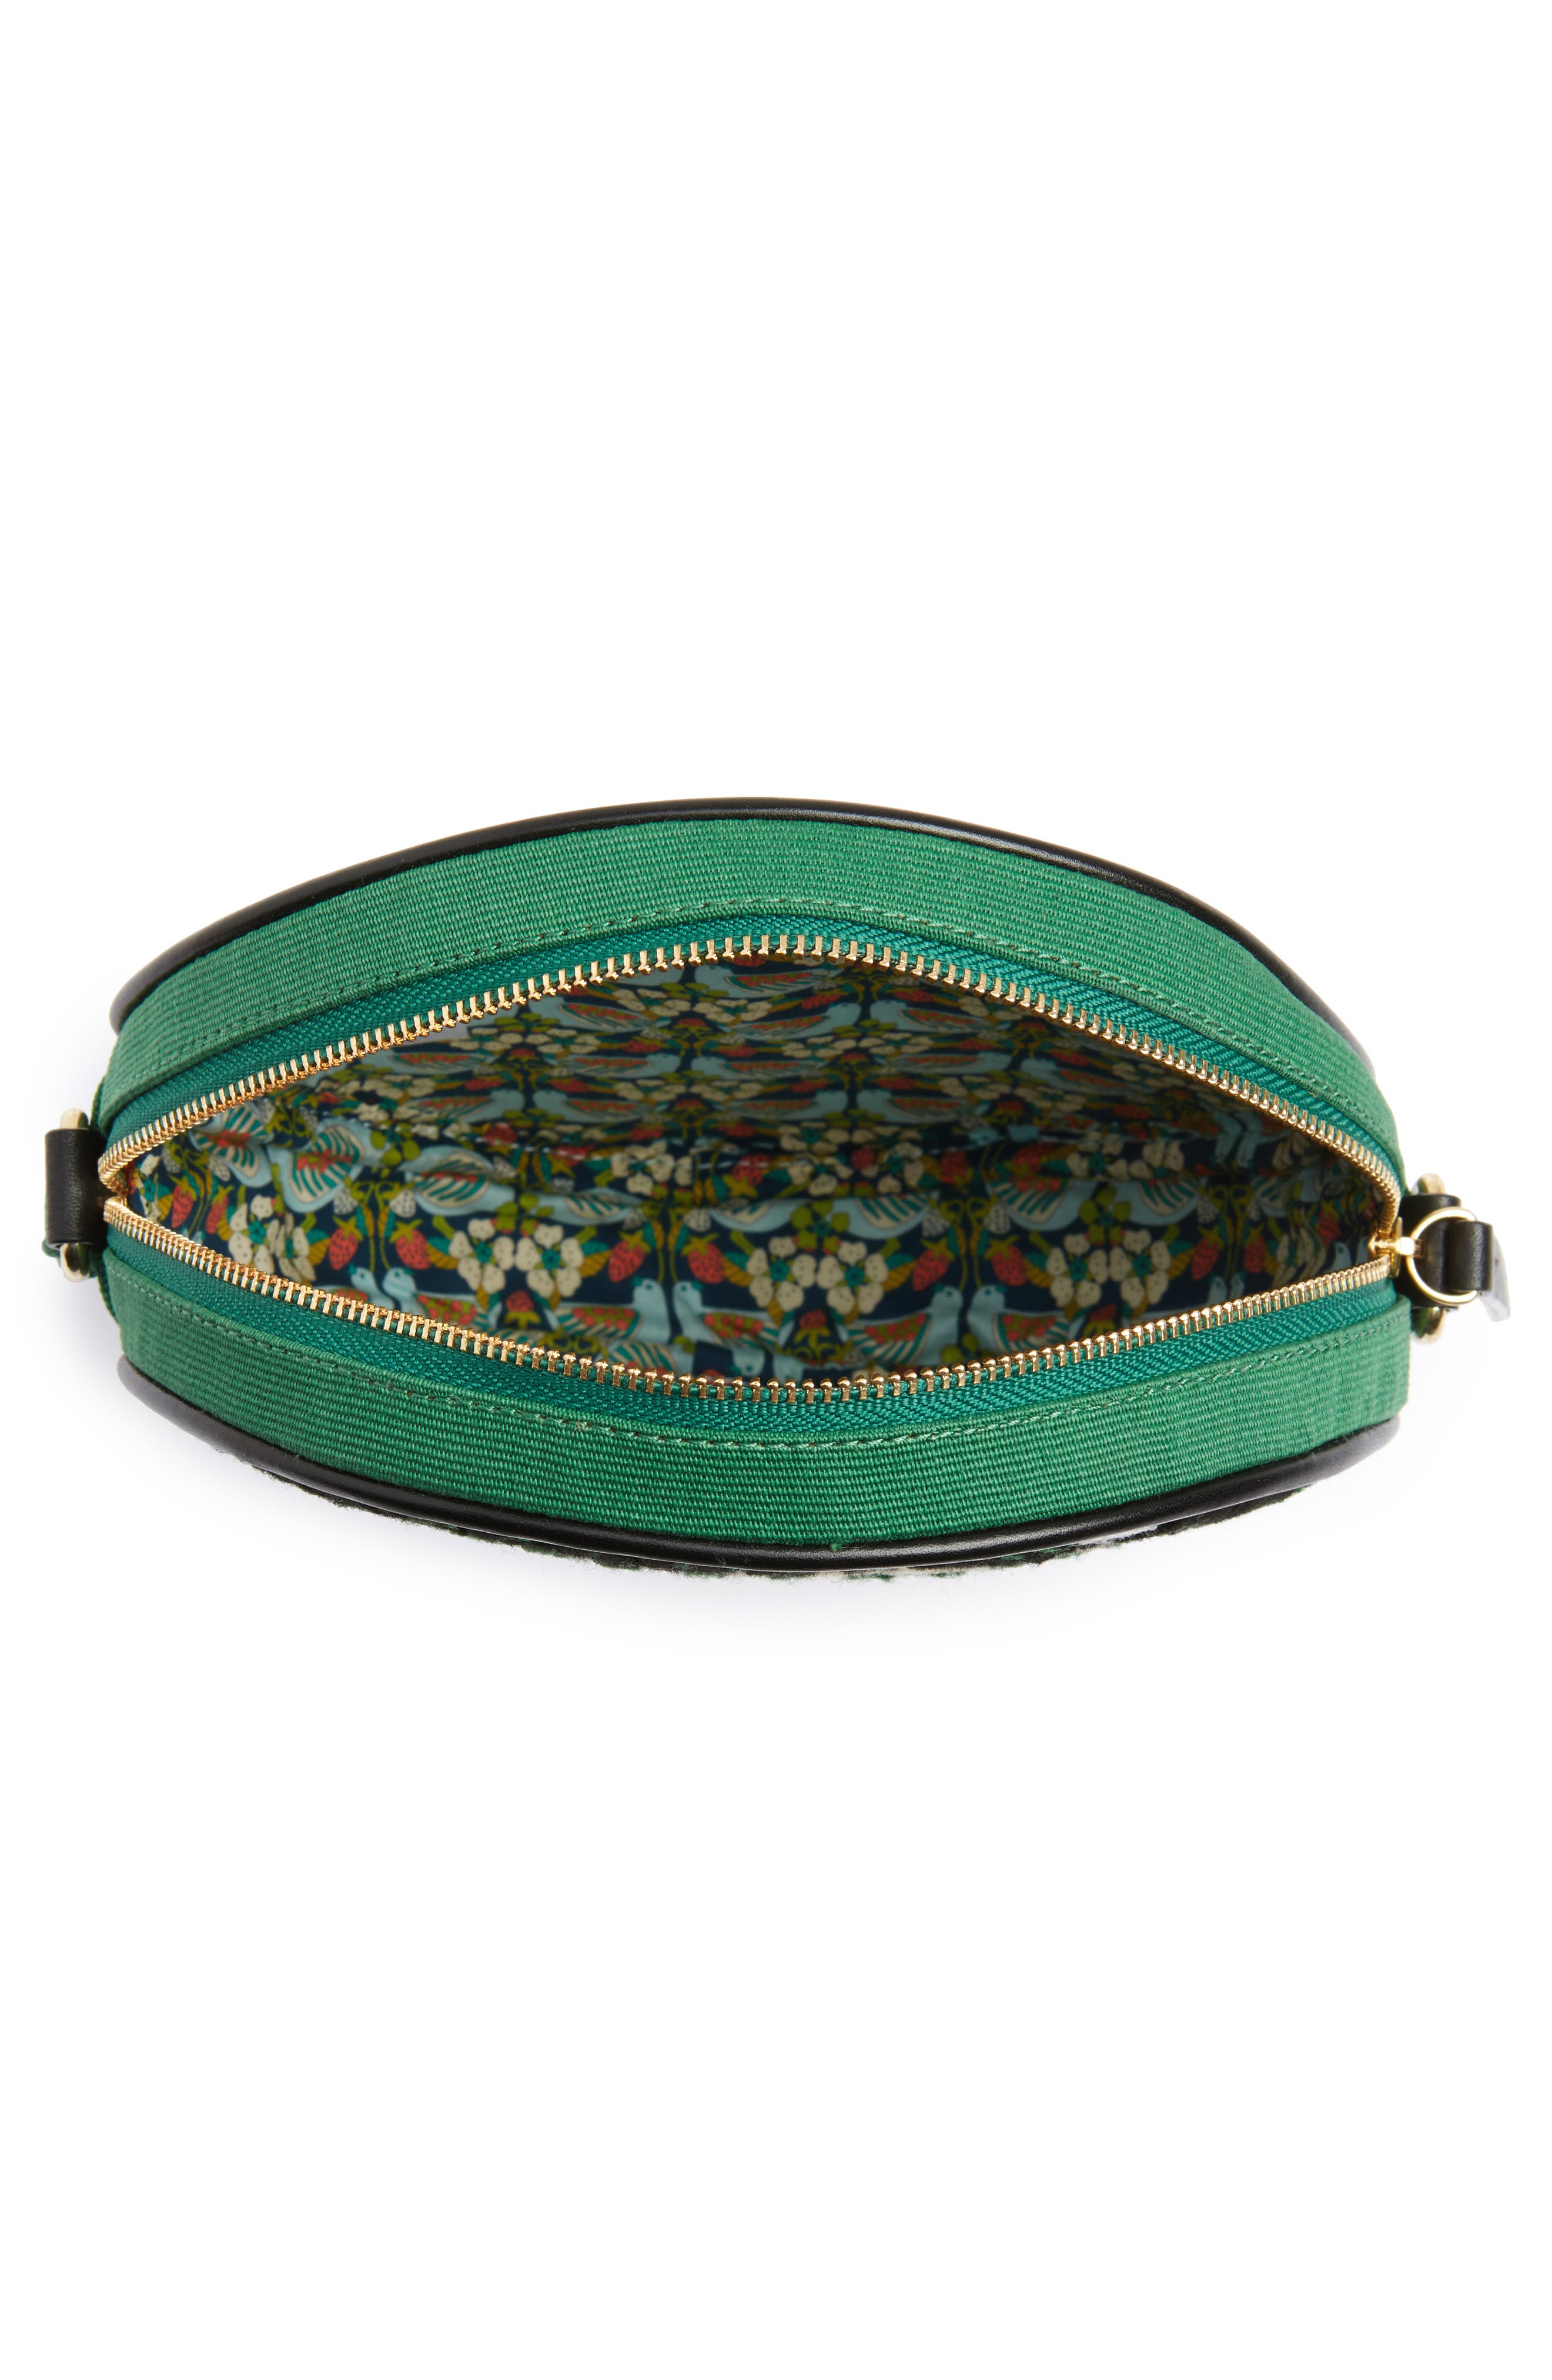 Kaleidoscope Shoulder Bag,                             Alternate thumbnail 3, color,                             Olive Green